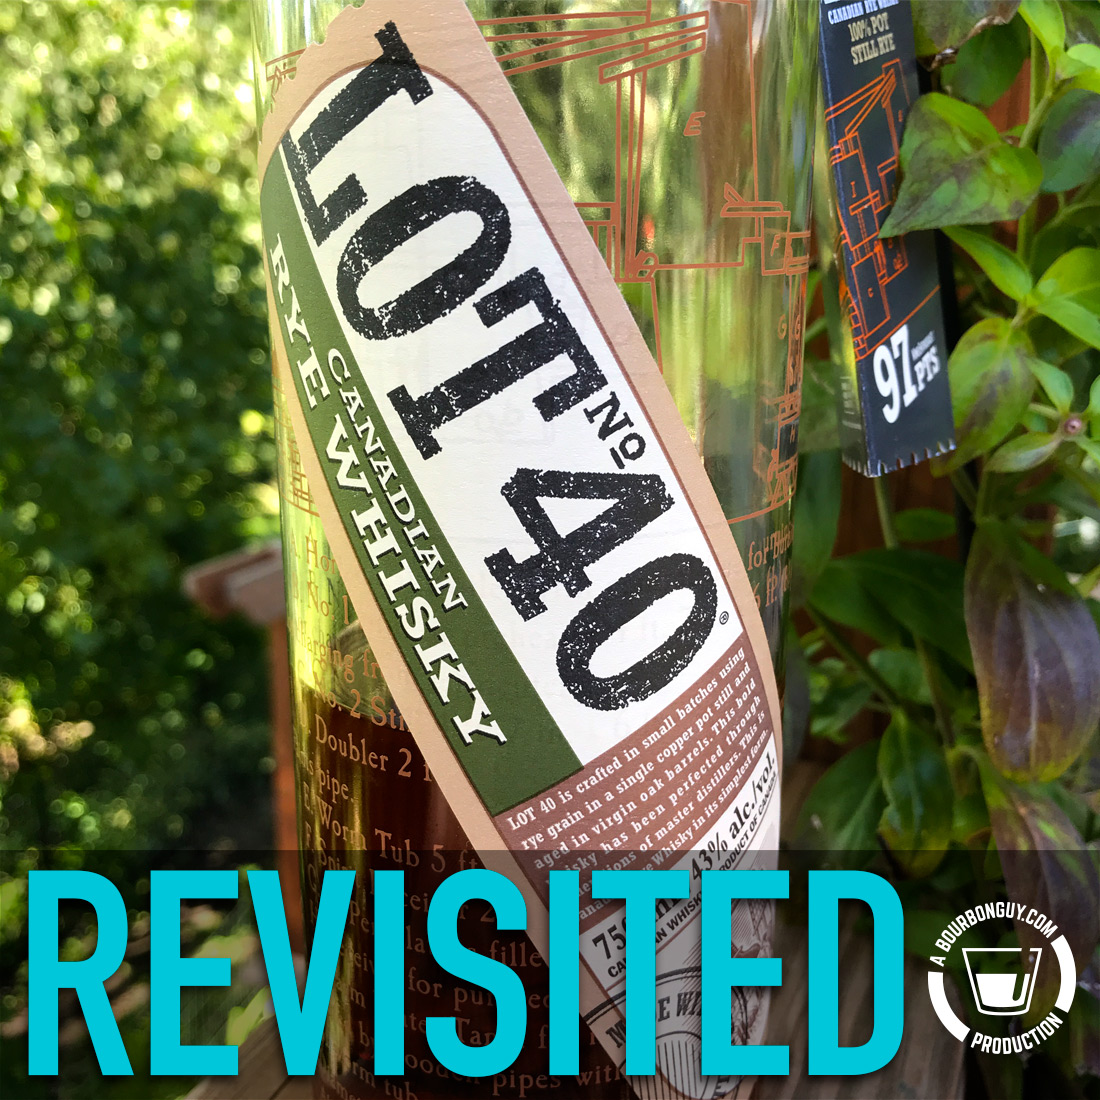 IMAGE: The front label of a bottle of Lot 40 Canadian Rye Whisky